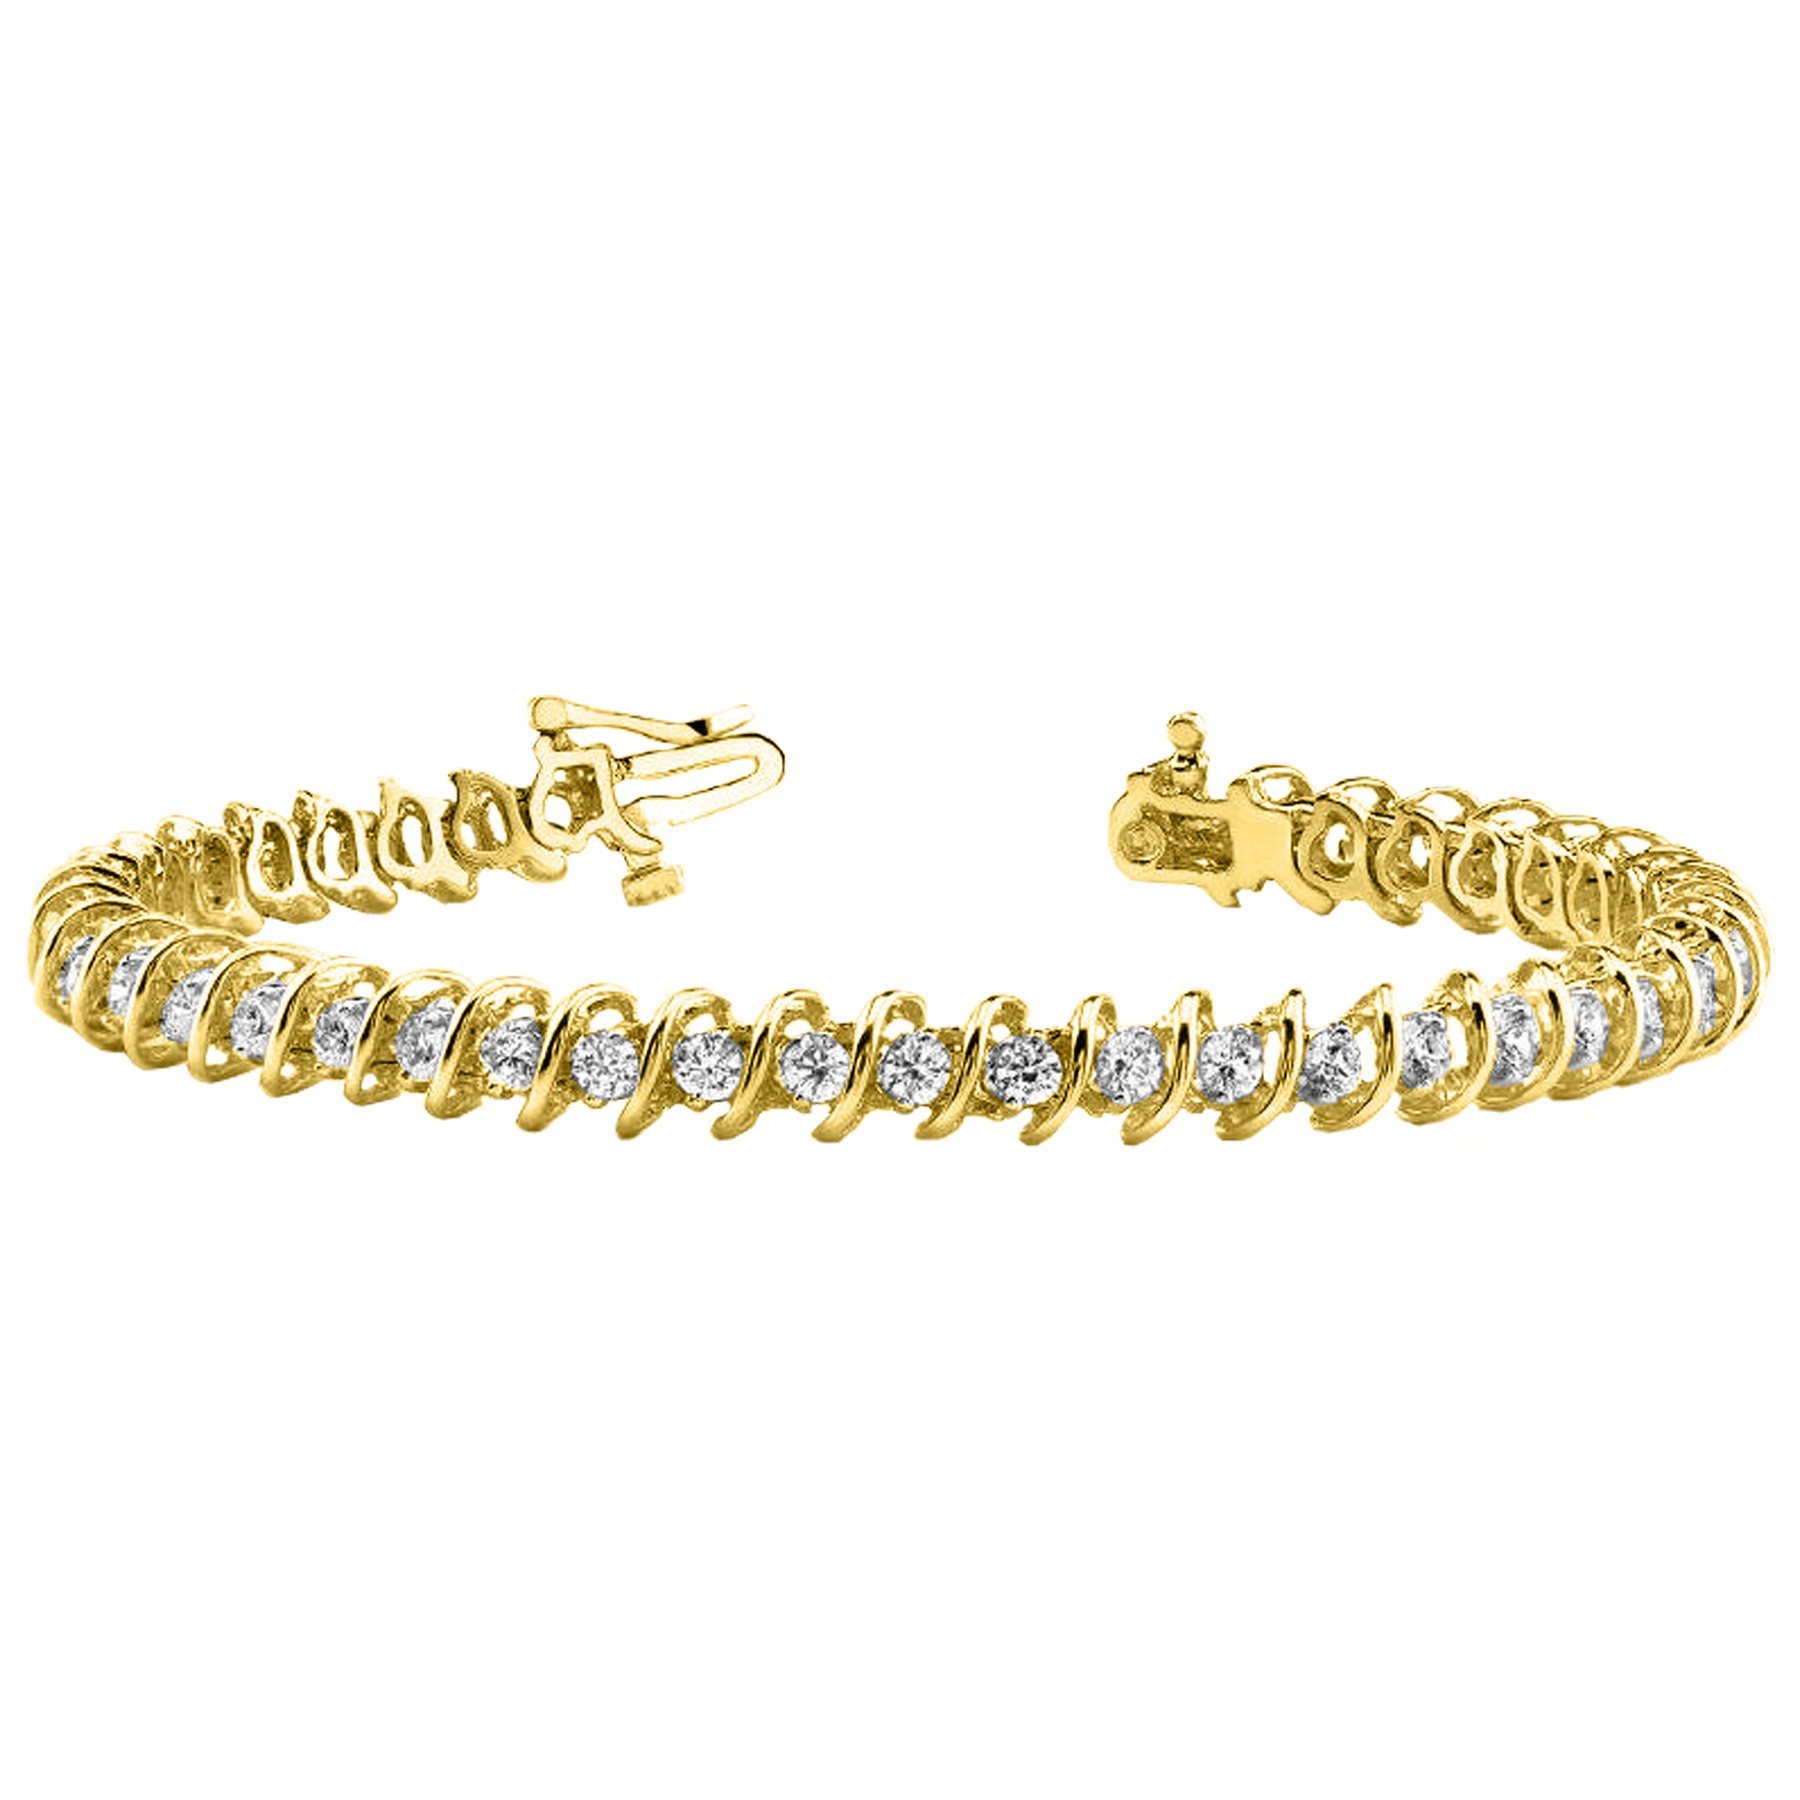 5 Carat S Link Diamond Tennis Bracelet 14K Yellow Gold Value Collection